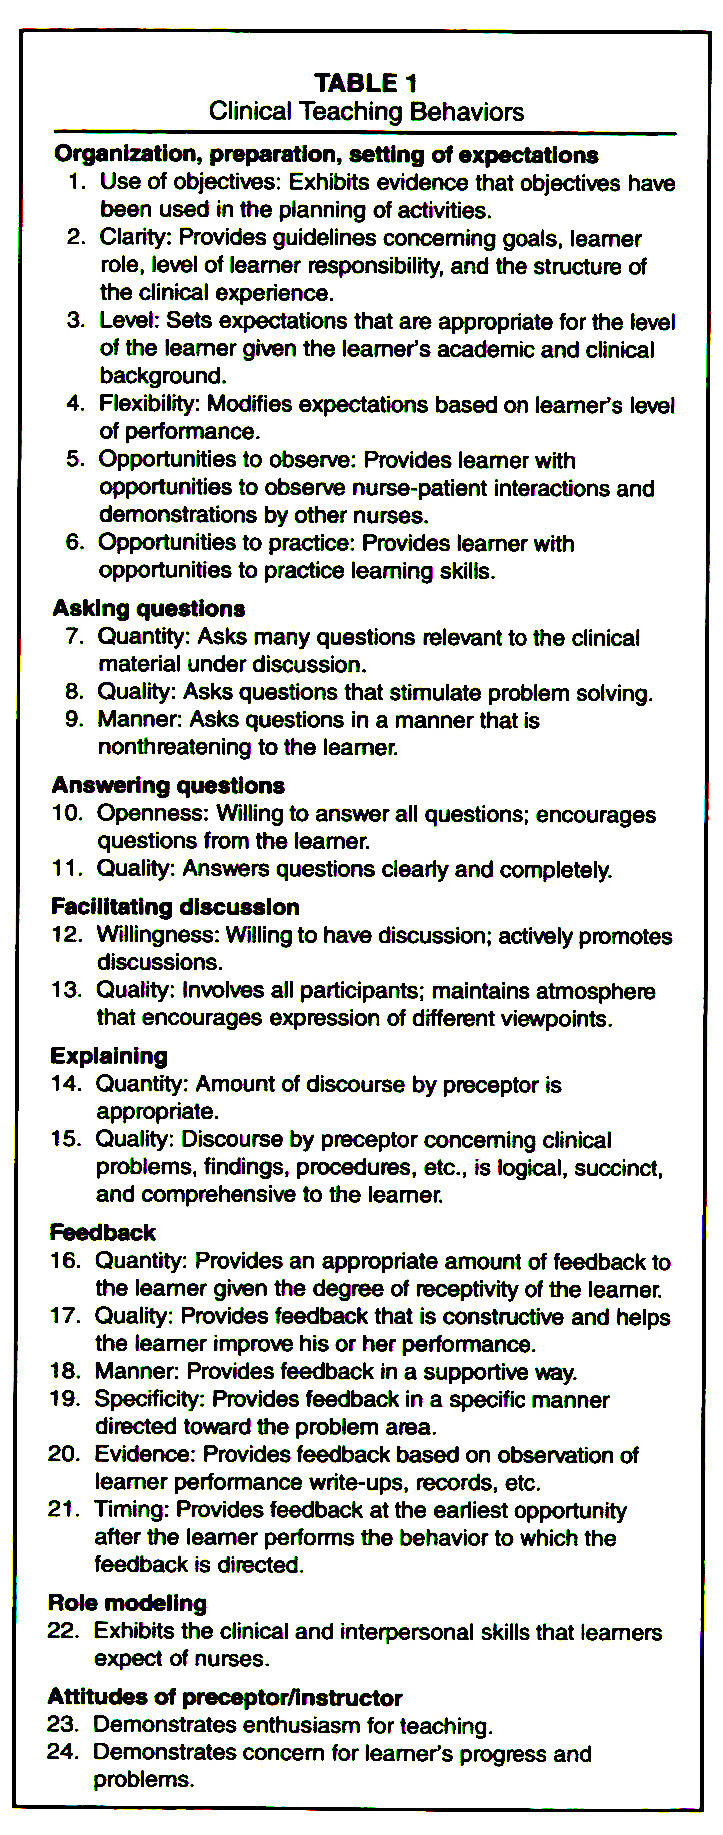 Clinical Teaching Effectiveness Described in Relation to